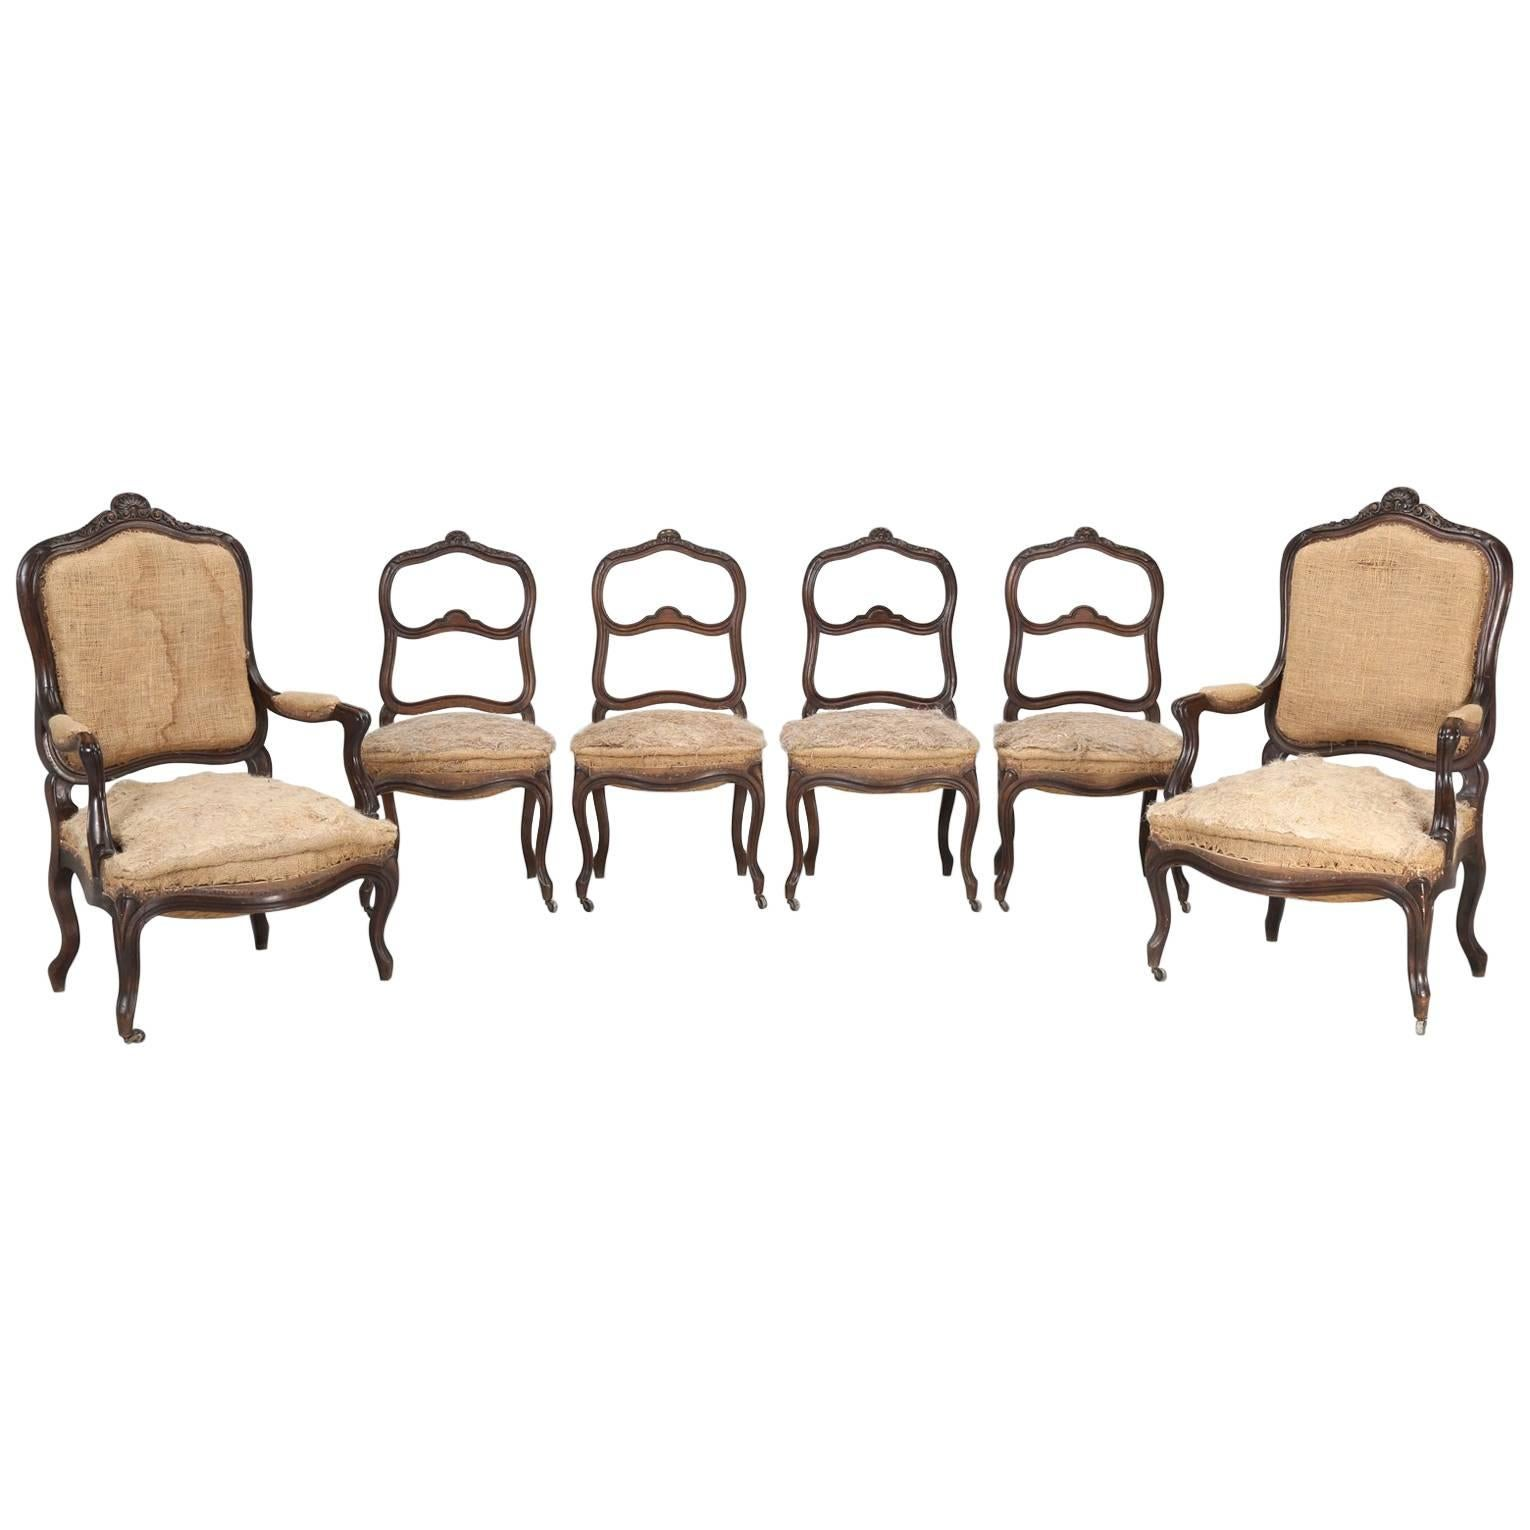 Antique Parlor Chairs Set Of Six Carved French Antique Living Room Or Parlor Chairs